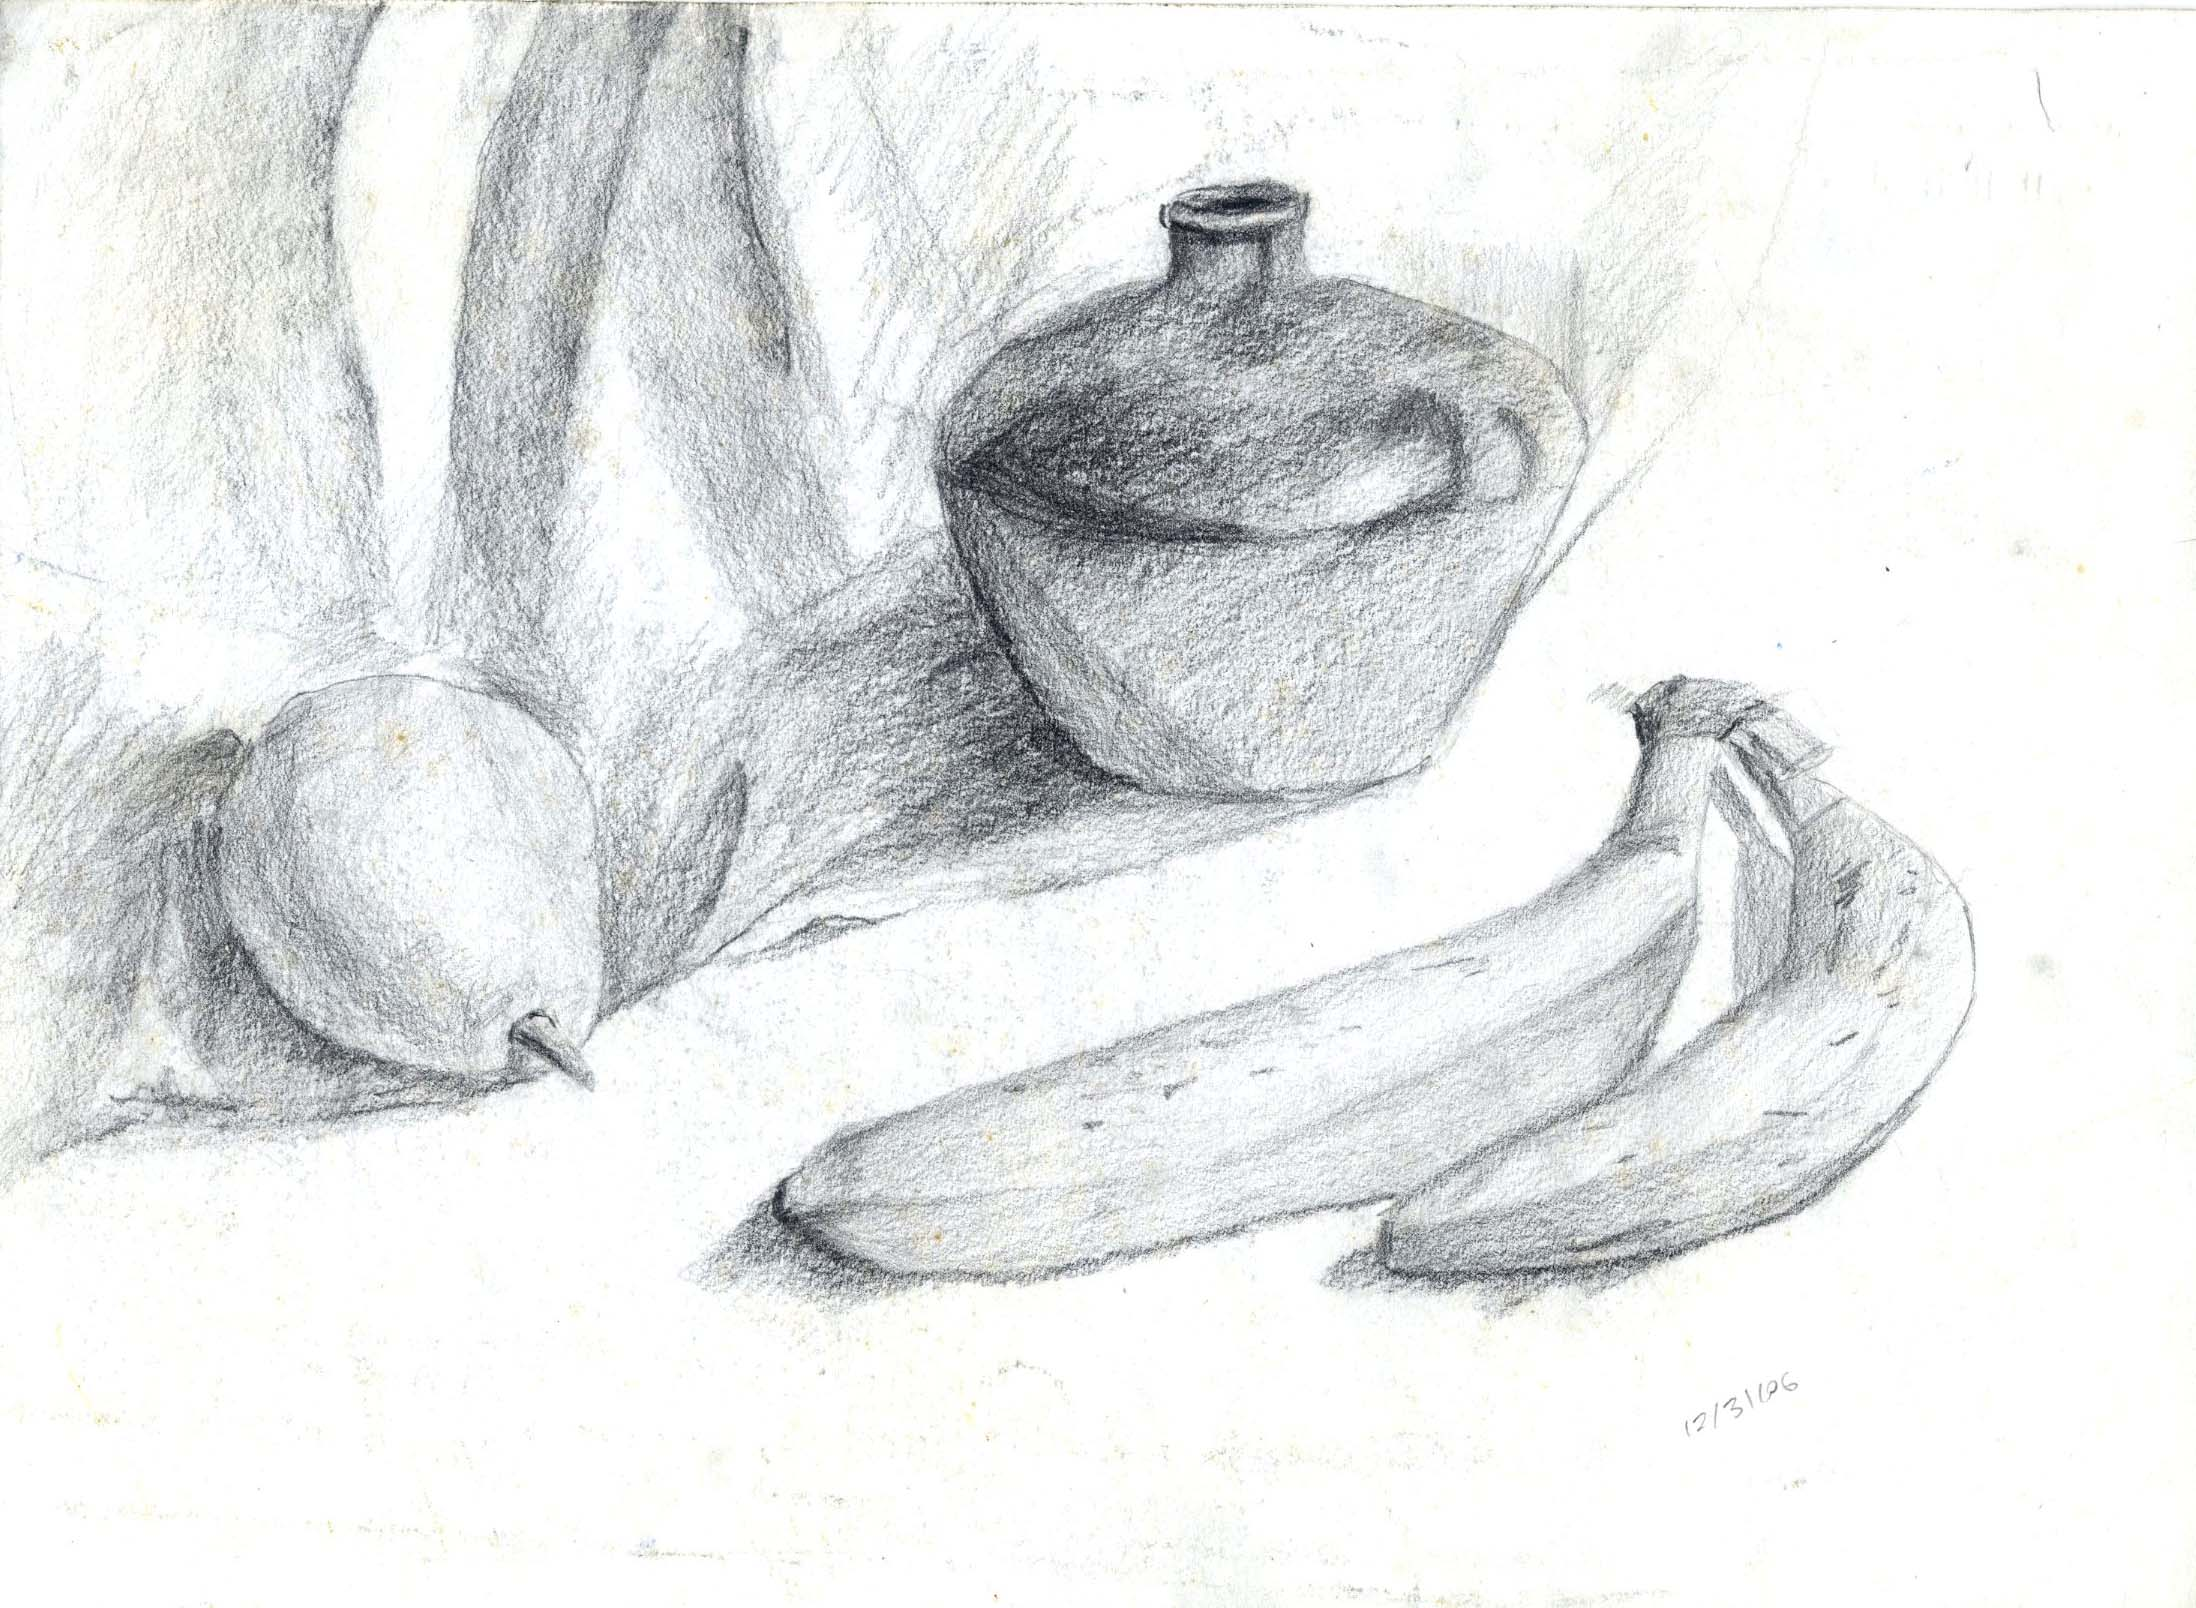 Drawn still life kettle Space Title: drawings My Juhpalang